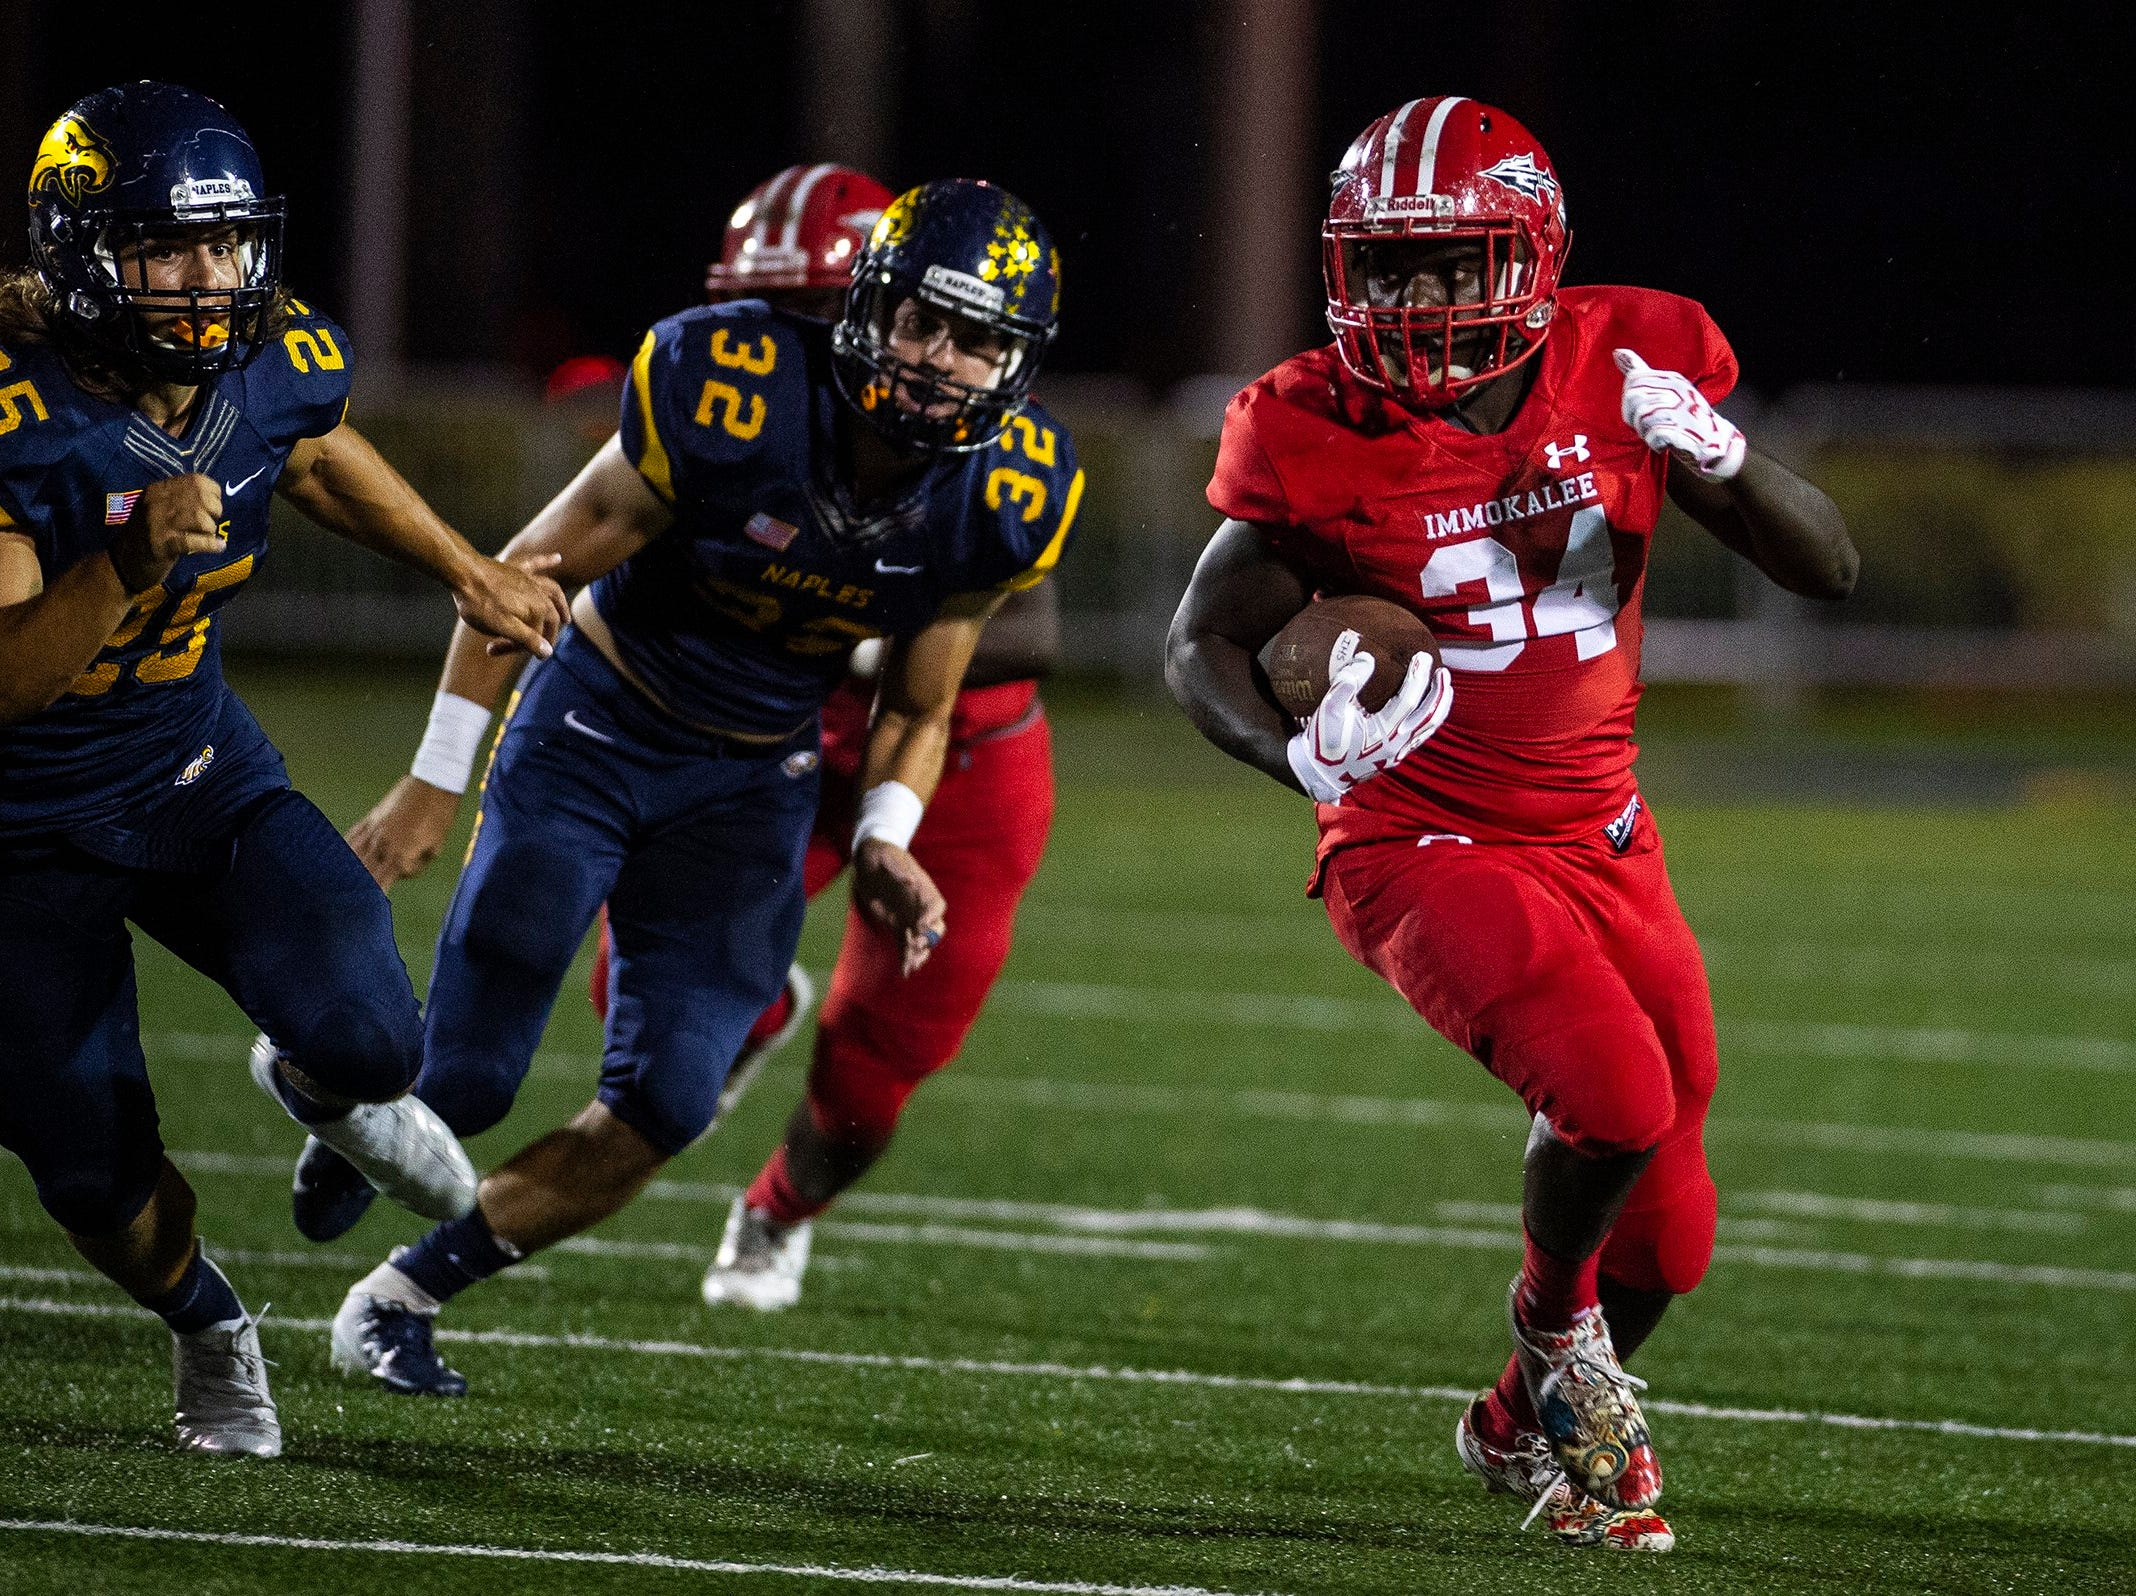 Immokalee High School's Dave Belrice runs the ball during a game against Naples High School in Naples, Fla. on Friday, September 21, 2018.